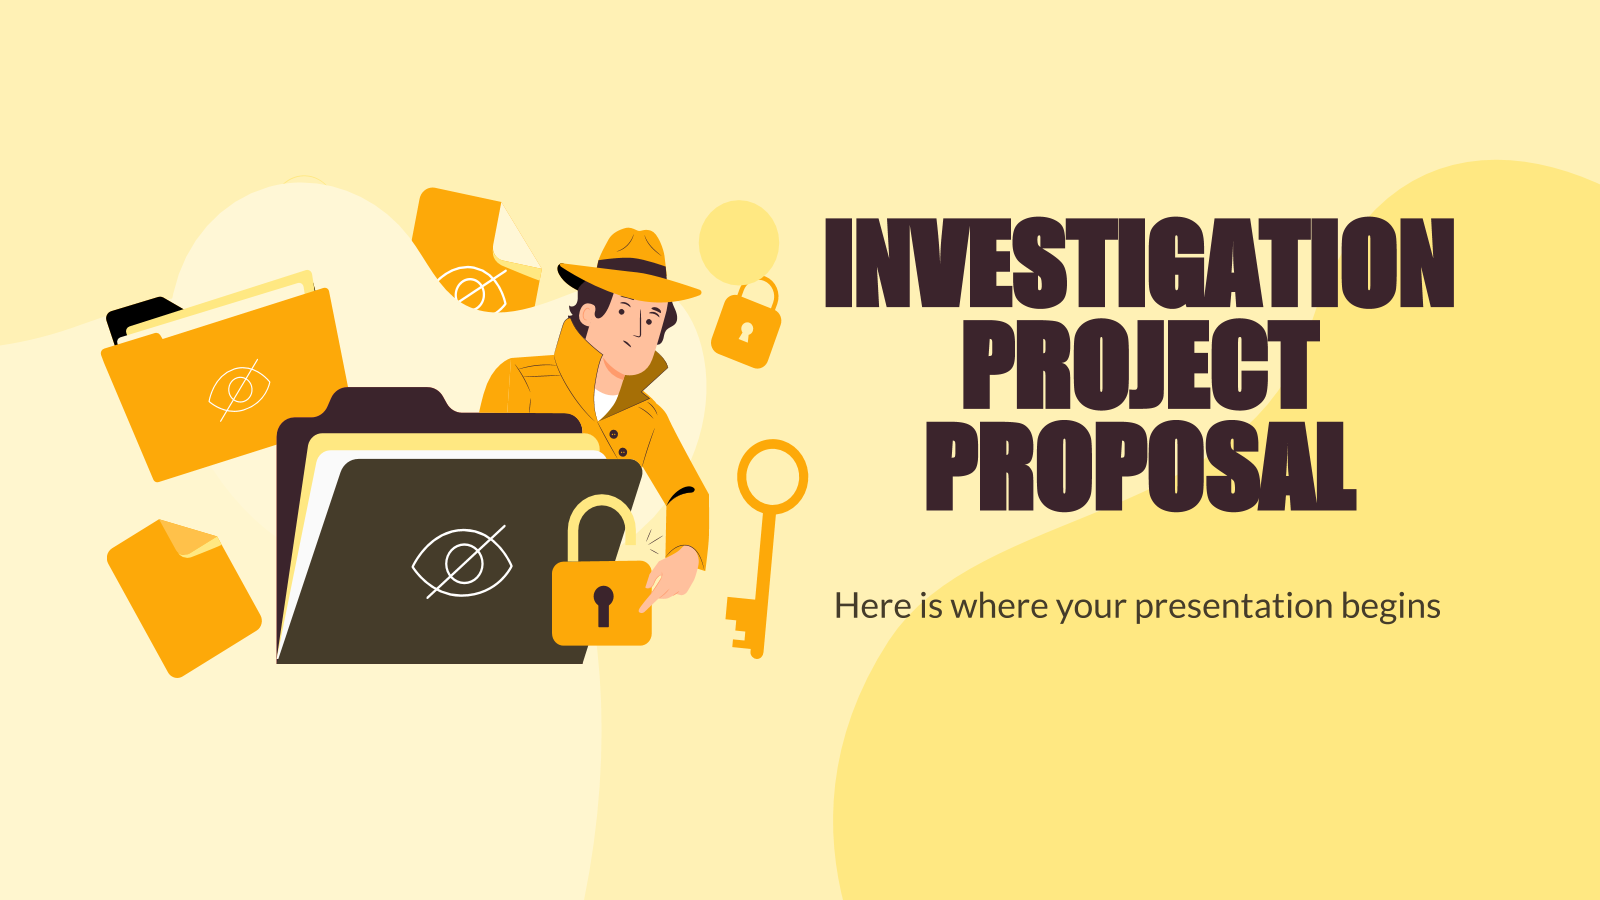 Investigation Project Proposal presentation template